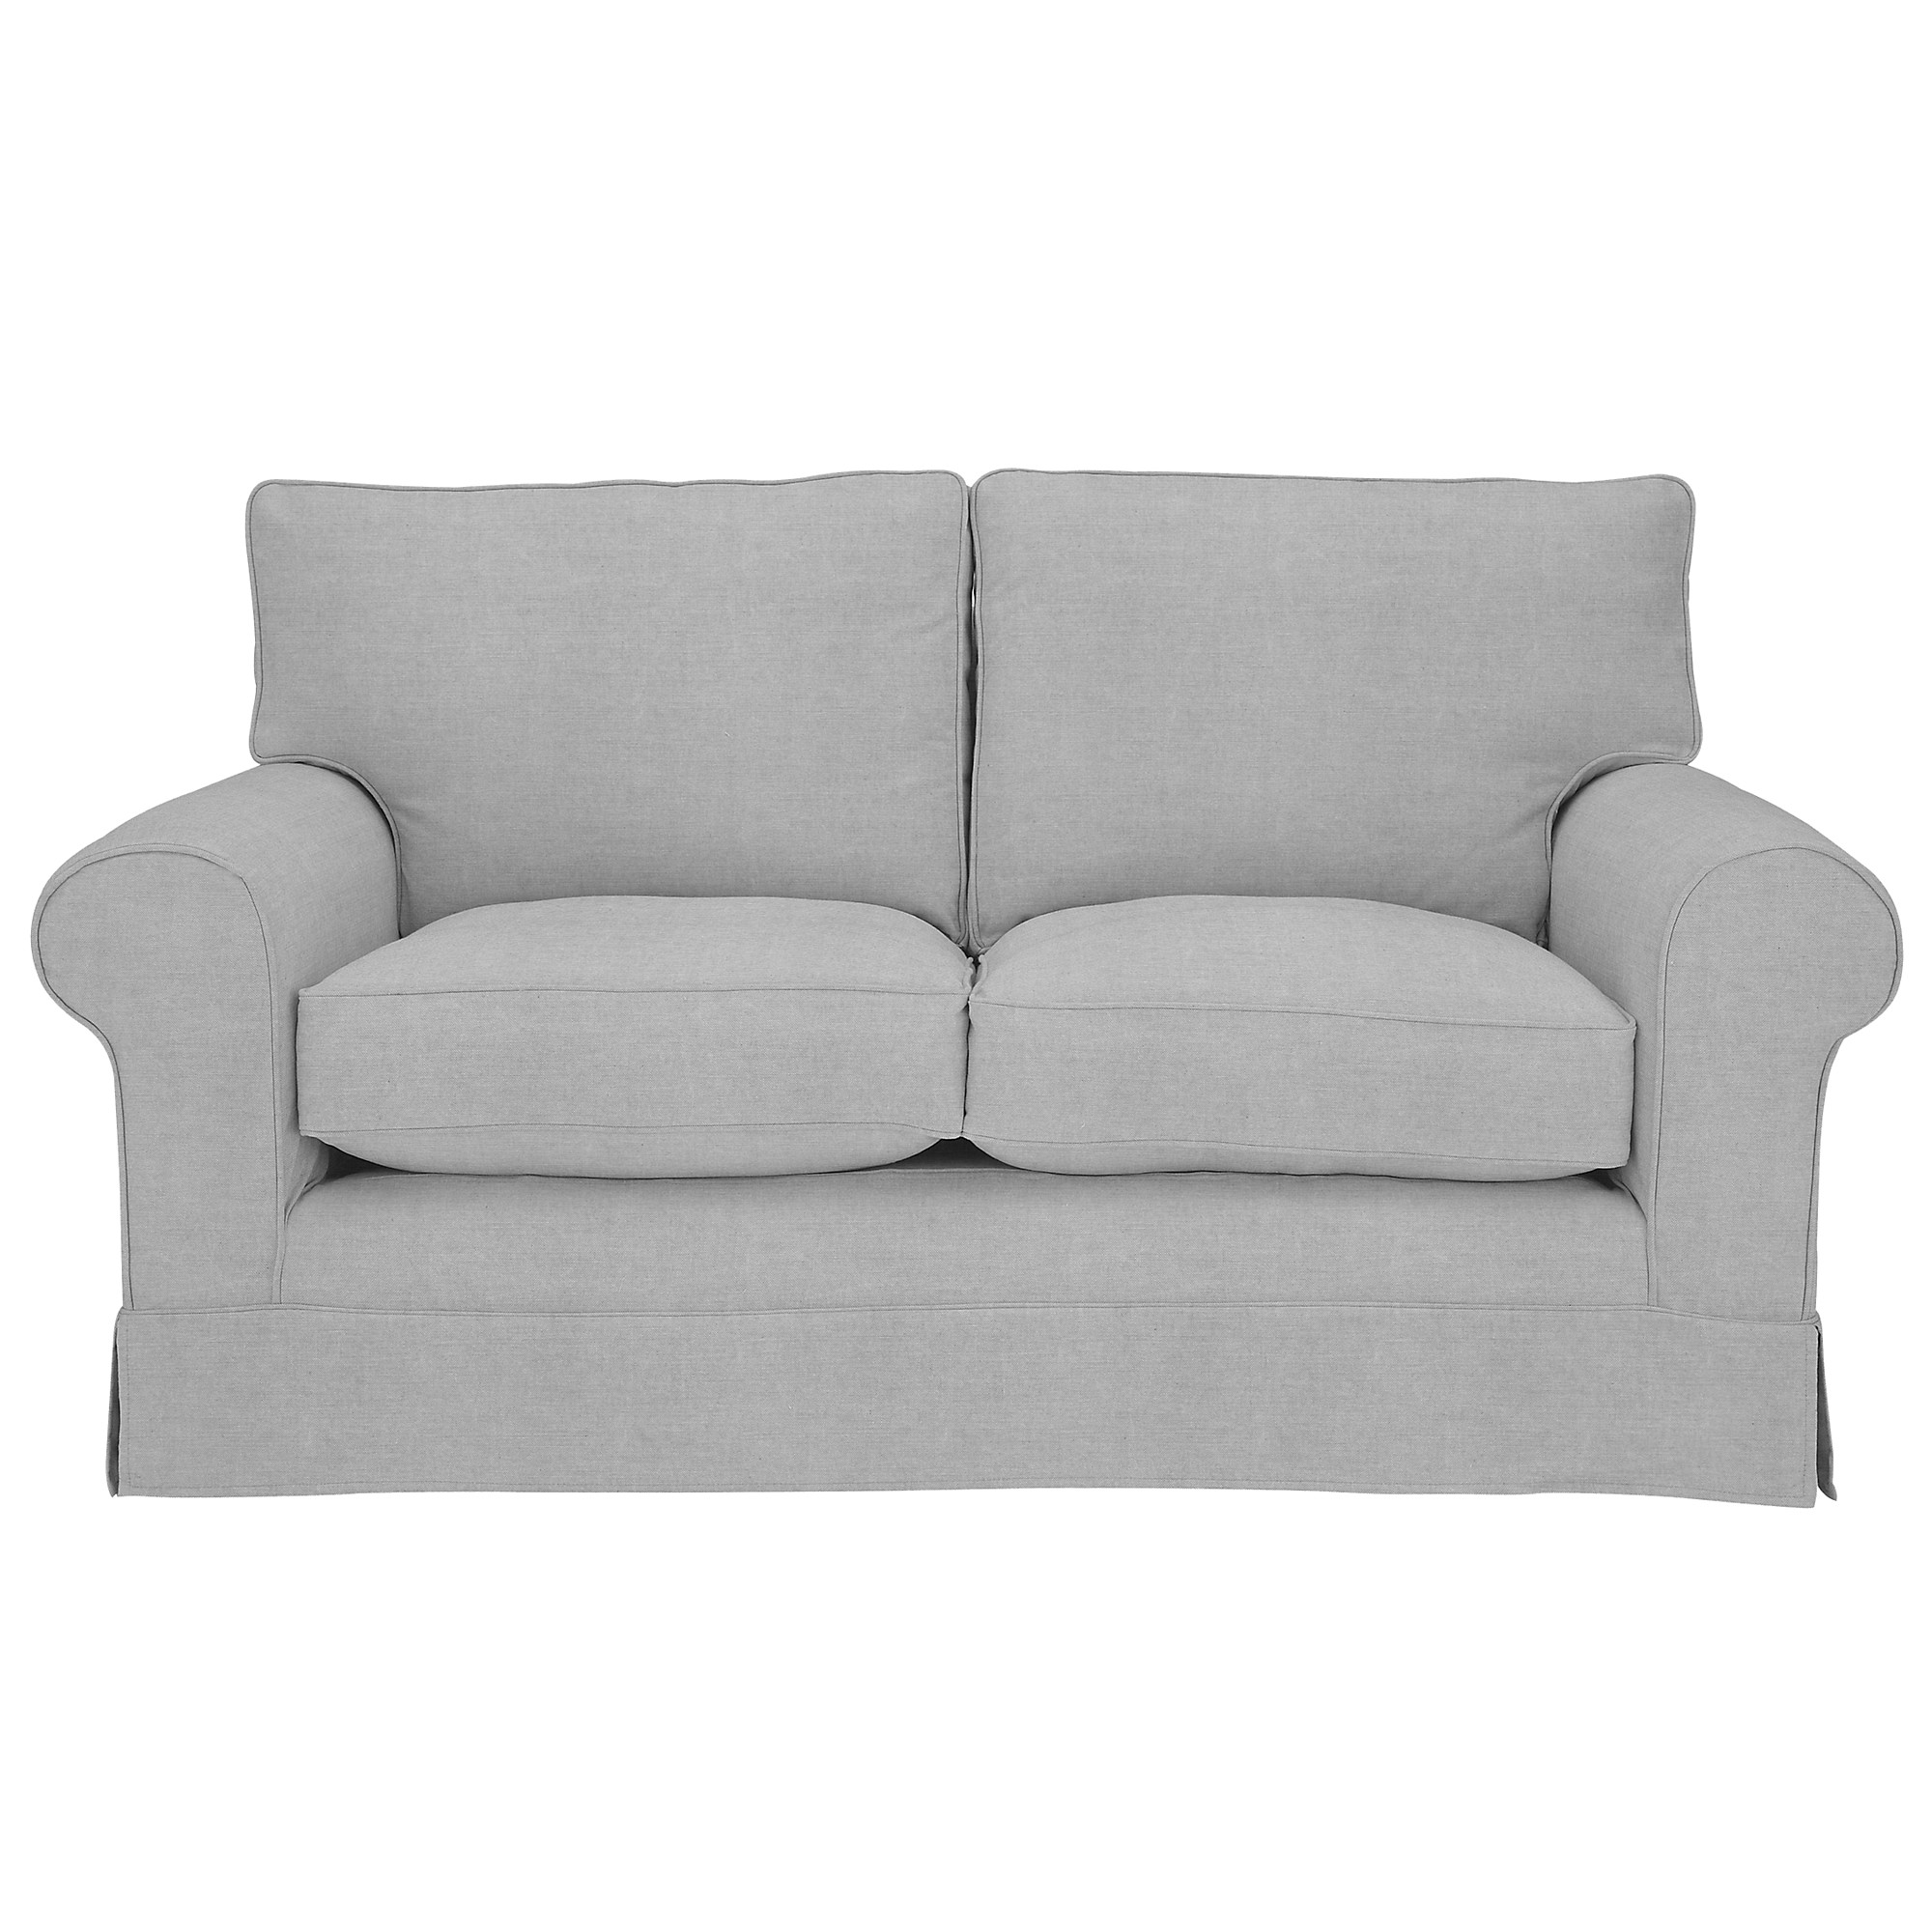 John Lewis Padstow Medium Fixed Cover Sofa Bed Review